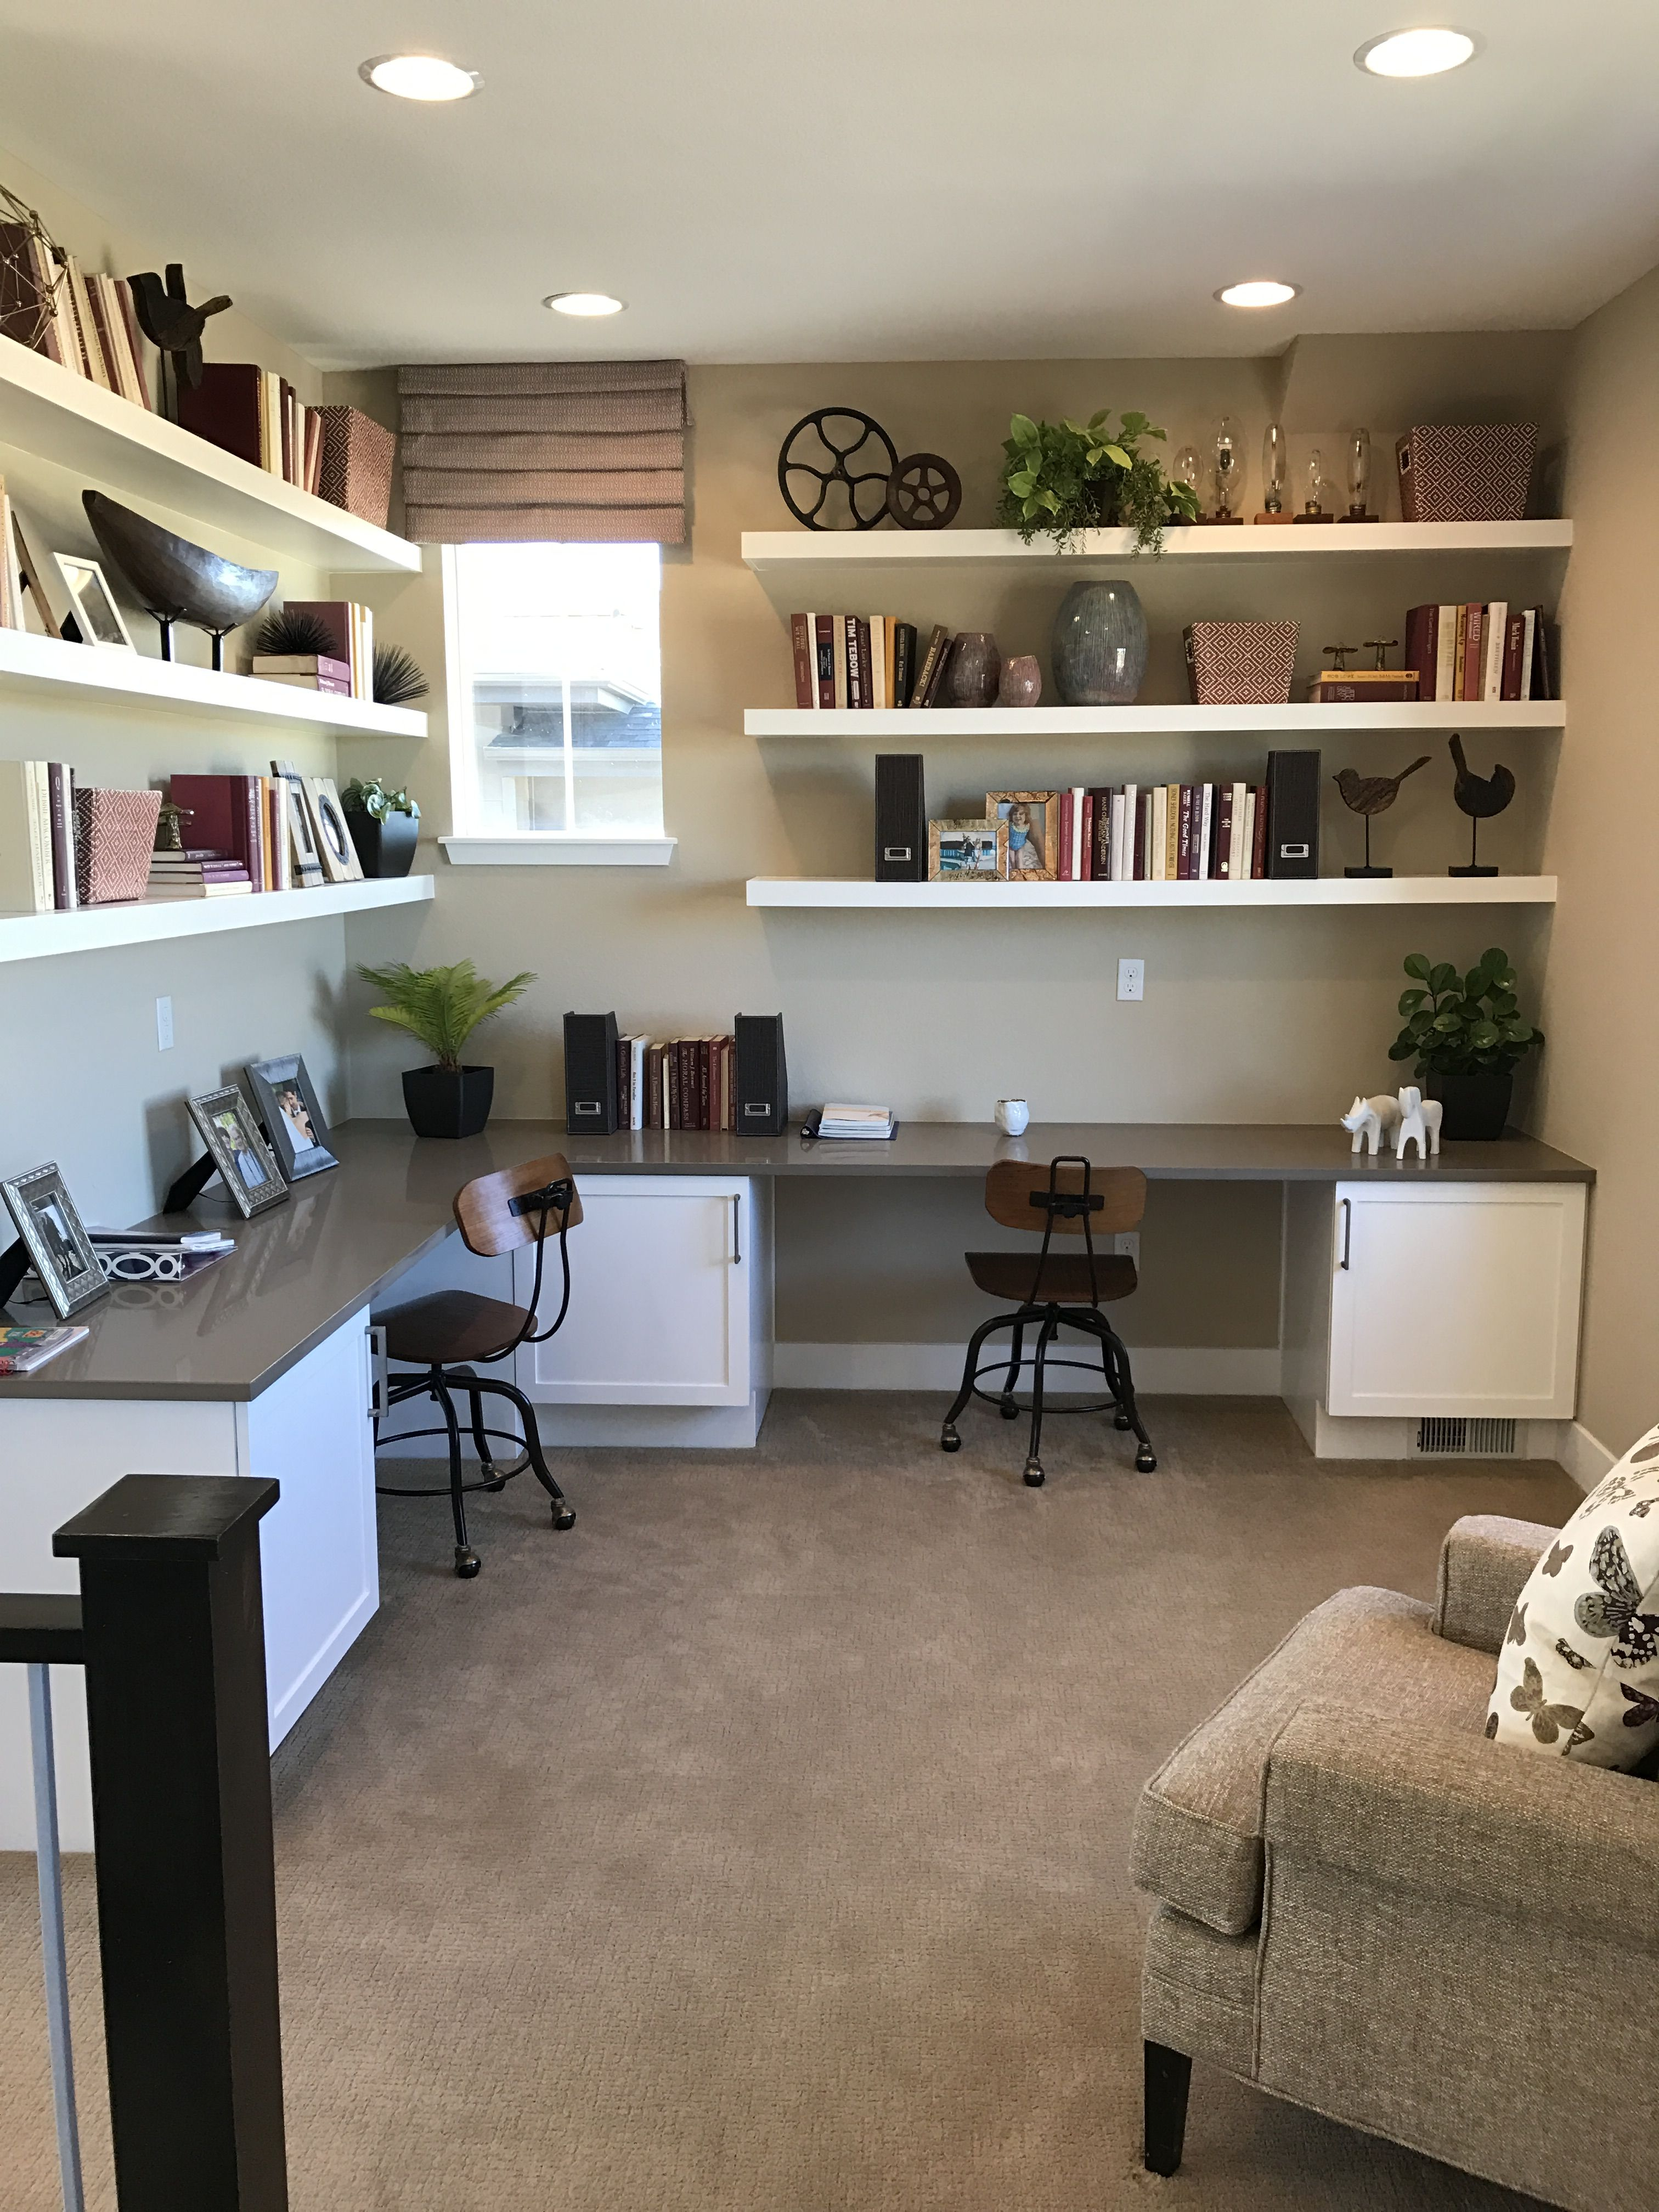 Small 10x10 Study Room Layout: Pin By LaUra On Model Home Tour